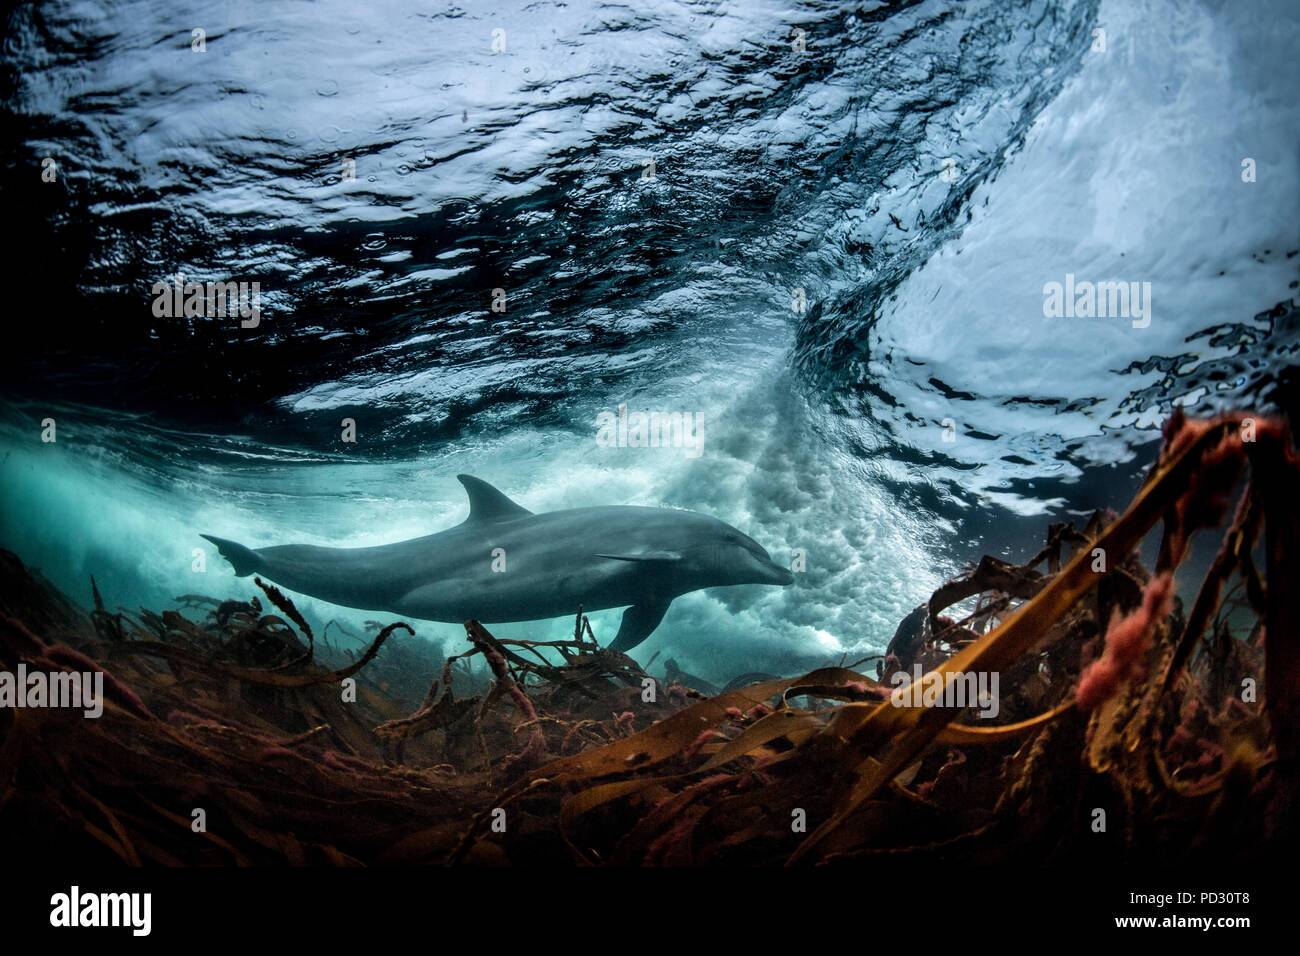 Surfing, Bottlenose dolphin (Tursiops truncates), underwater, low angle view, Doolin, Clare, Ireland - Stock Image